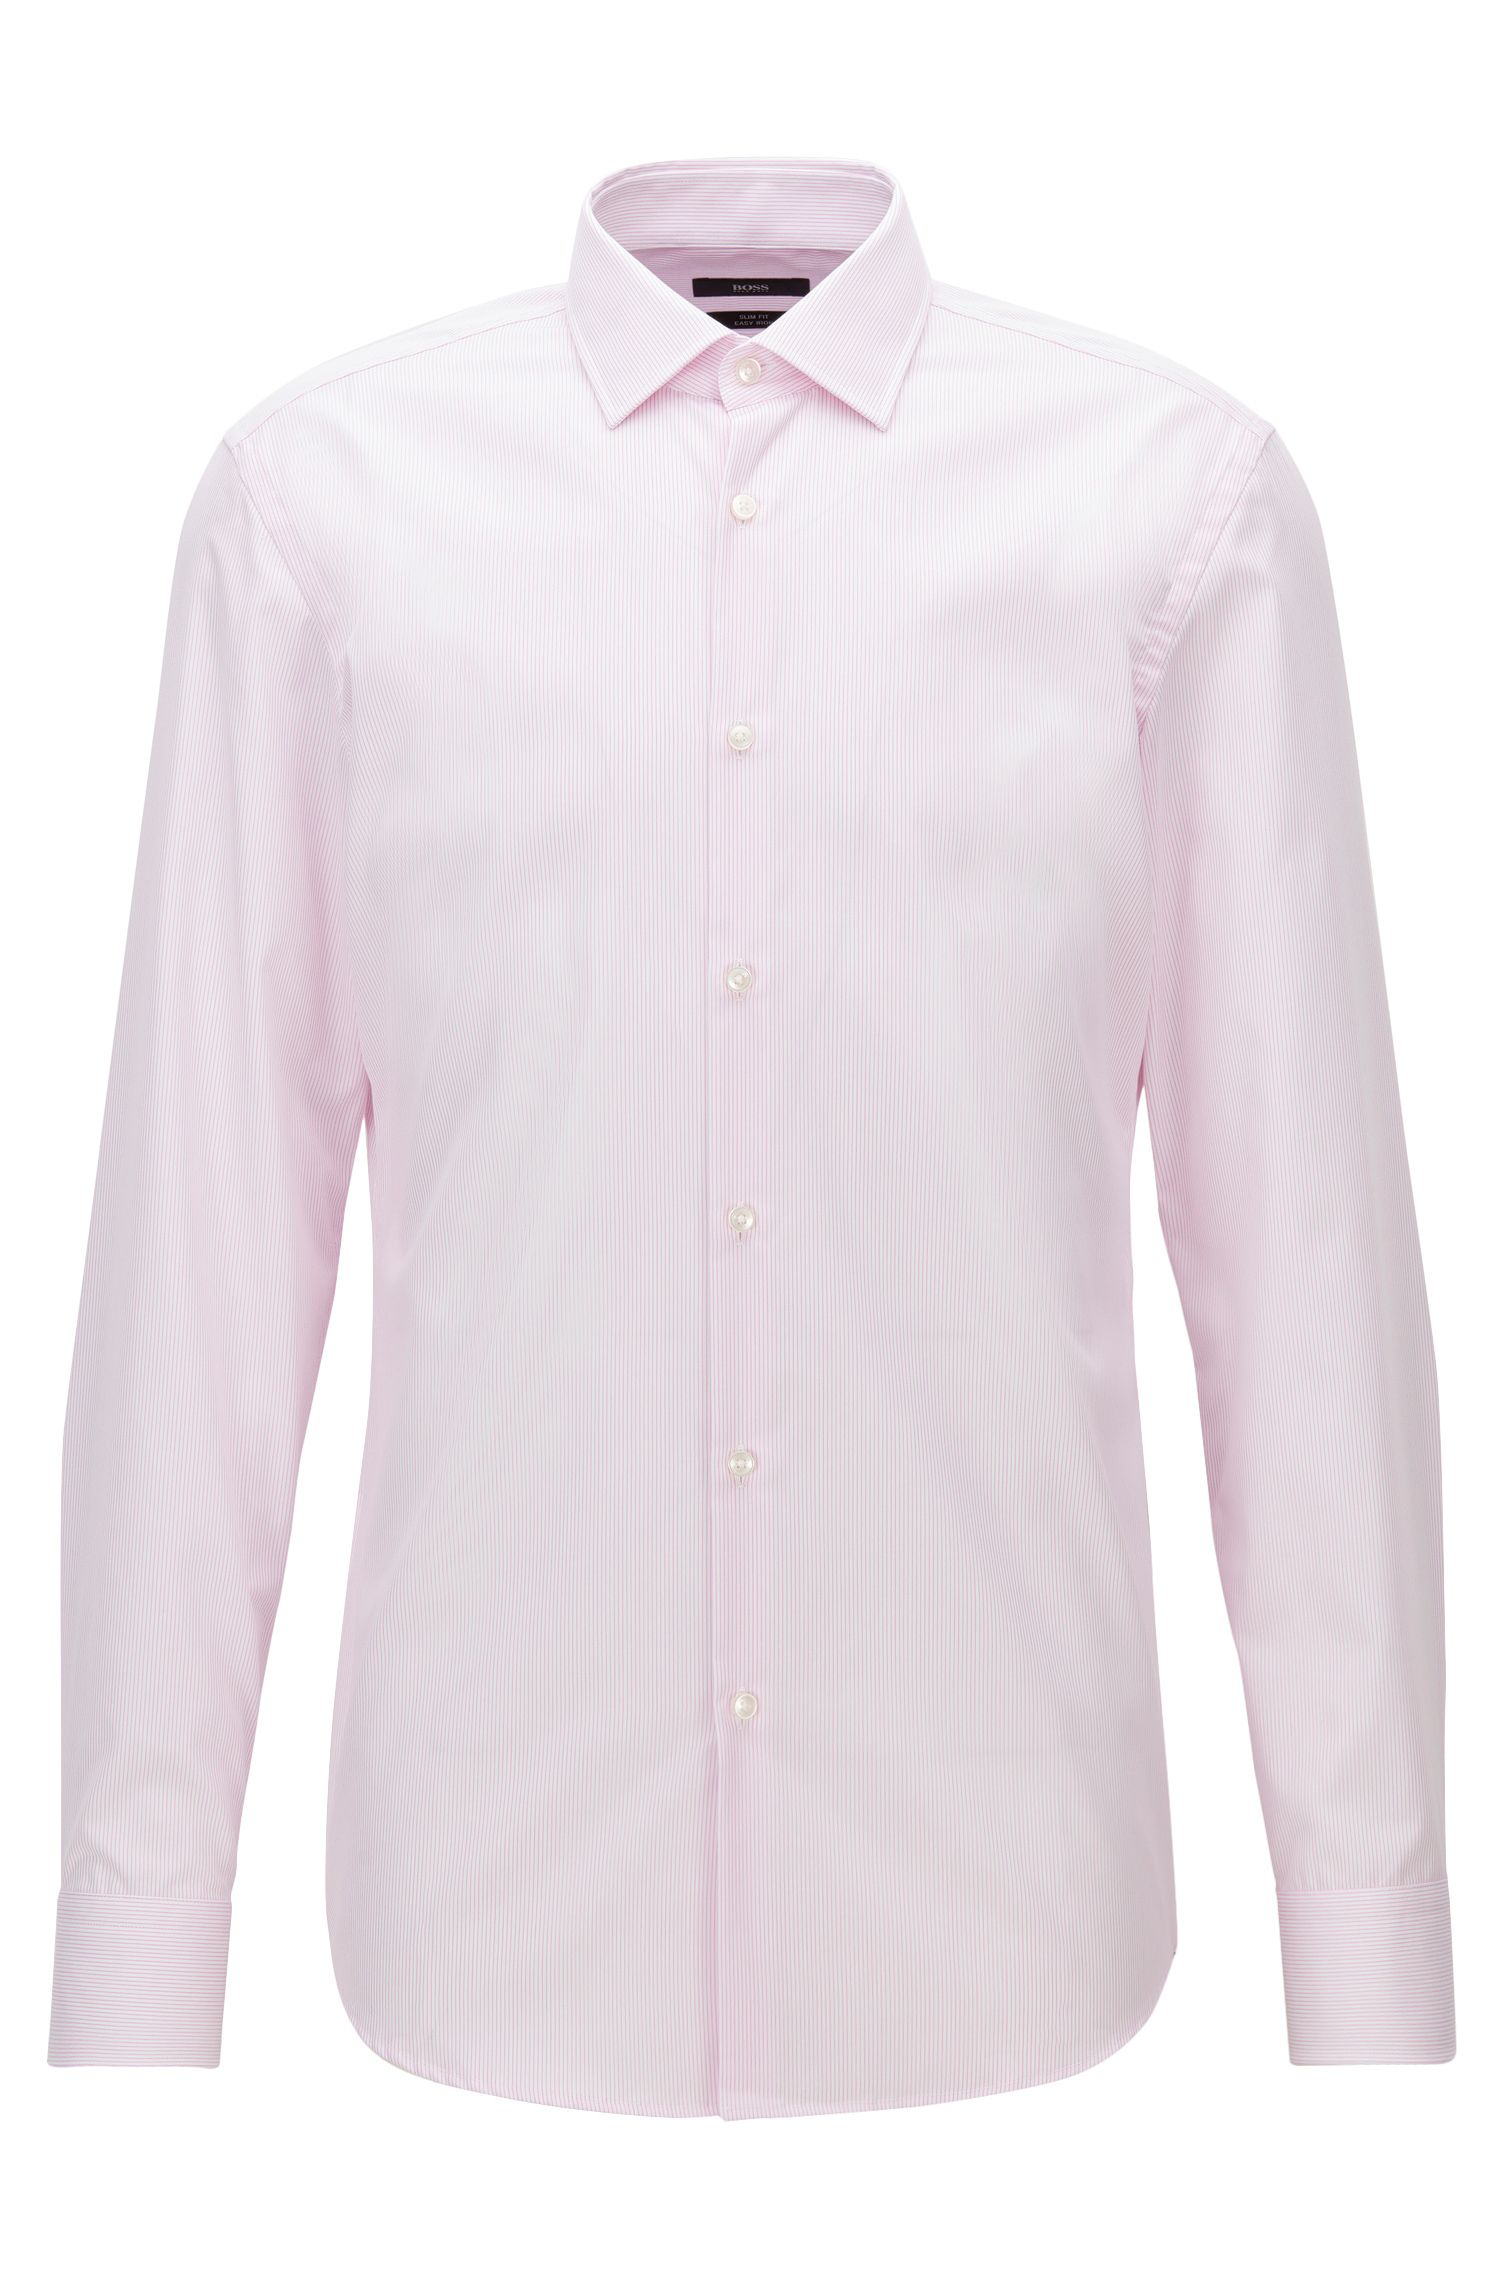 Camicia slim fit a righe sottili in cotone facile da stirare